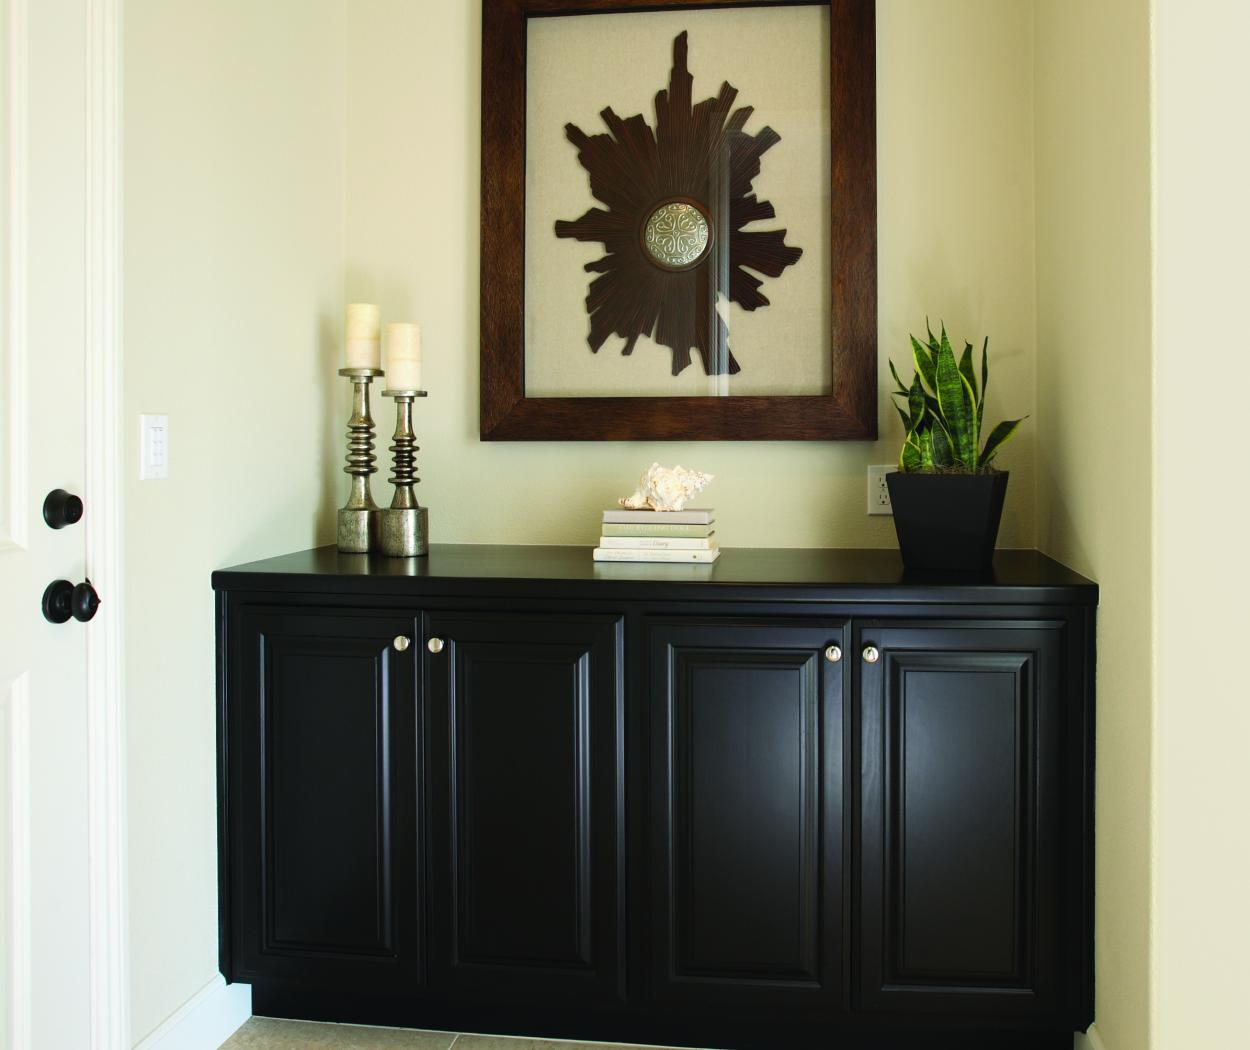 Beautiful Entry Built-In Stained in a Dark Espresso with a Matching Wood Top and Chrome Knobs